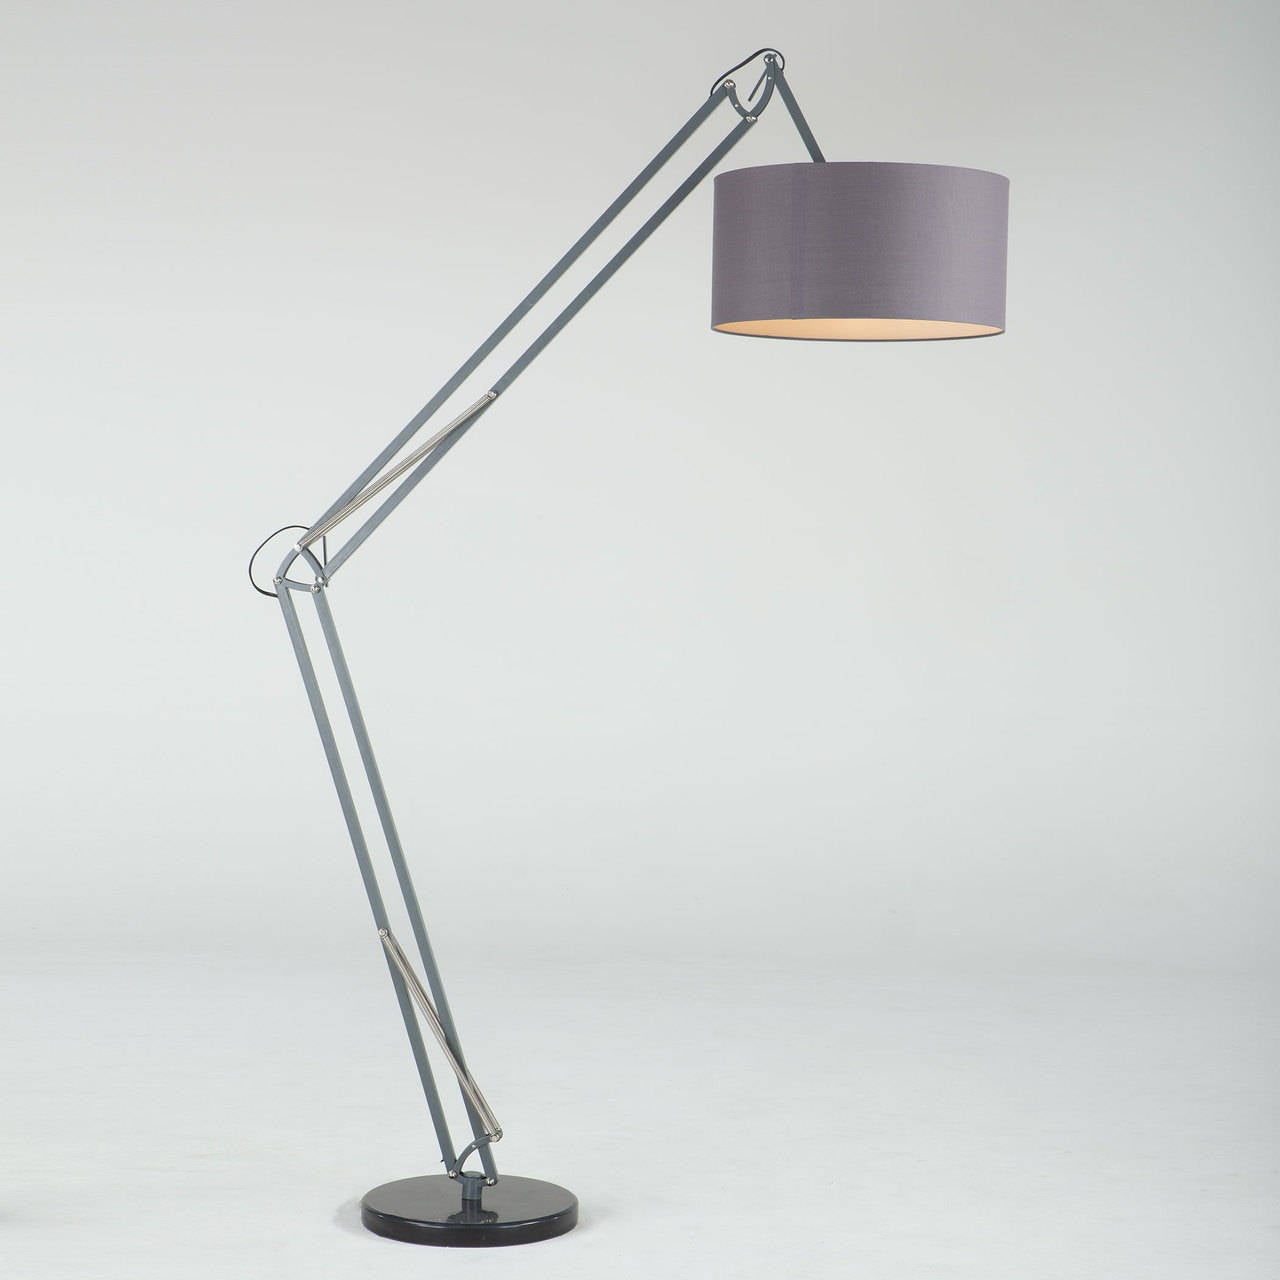 grey drum shade floor lamp for sale at 1stdibs. Black Bedroom Furniture Sets. Home Design Ideas